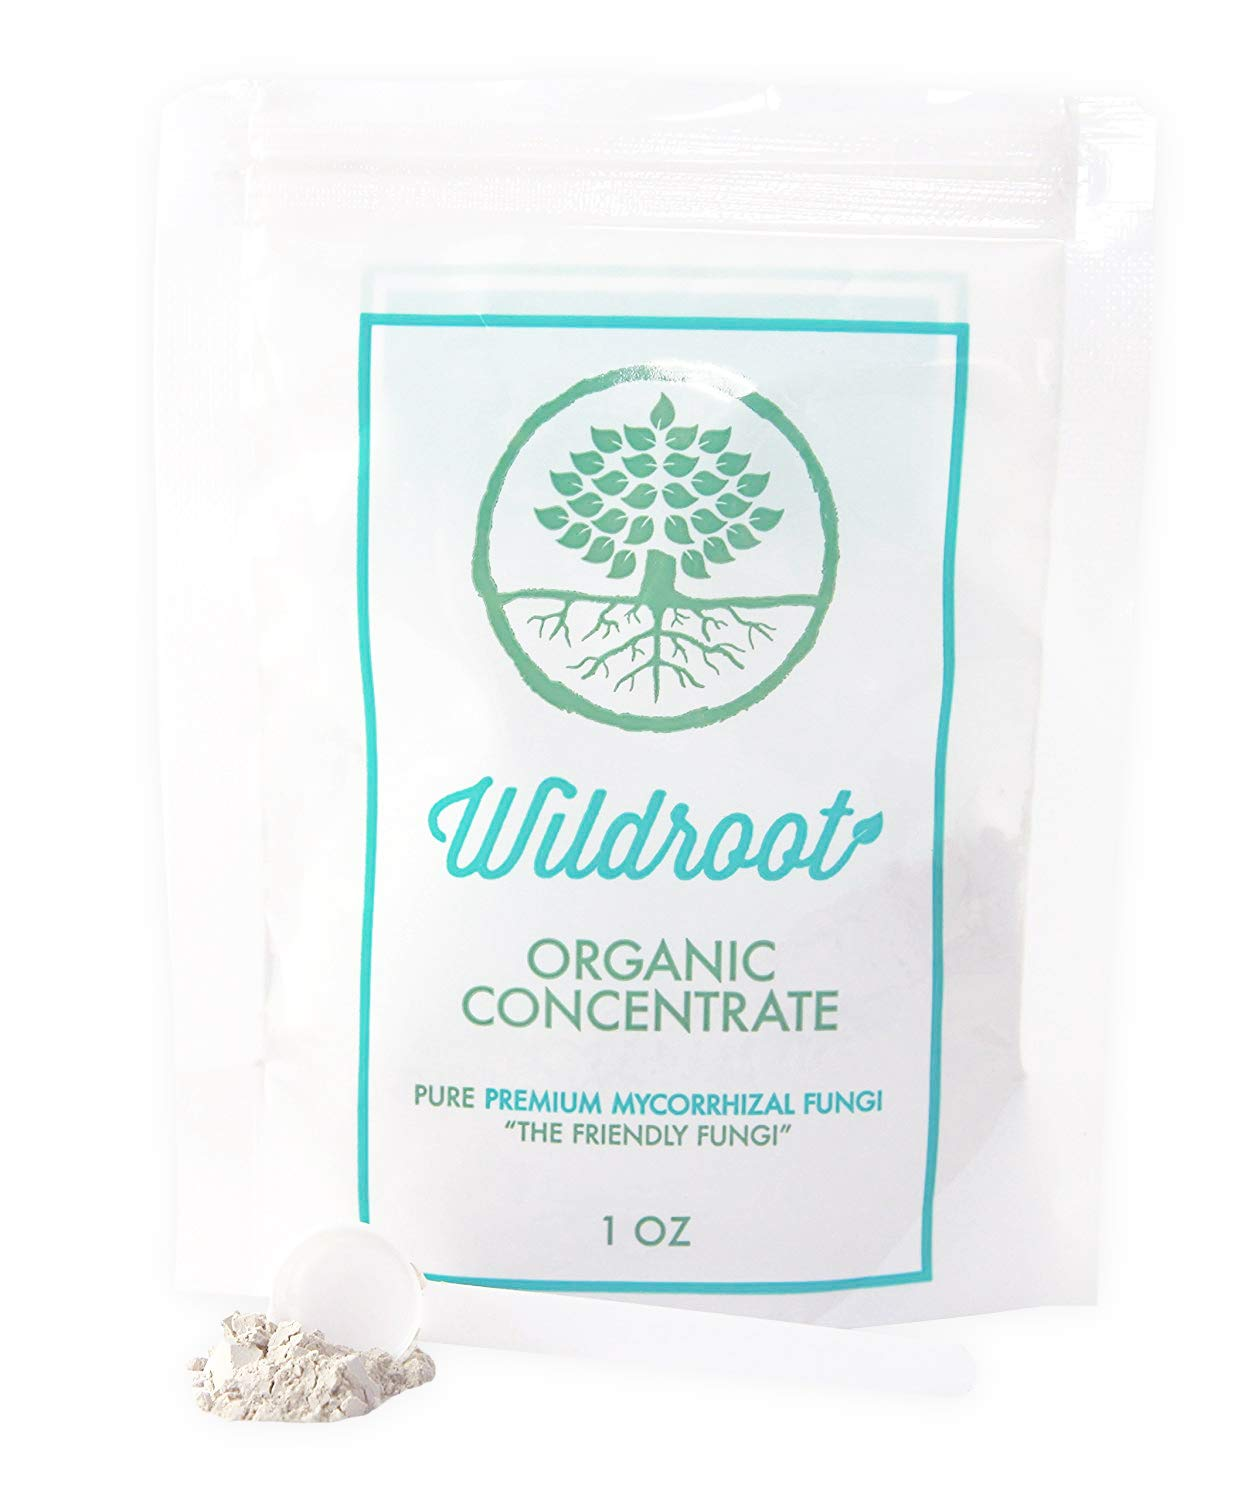 Wildroot Organic Mycorrhizal Fungi (16 Species) Endo & Ecto Mycorrhizae Inoculant Powder Concentrate for Plants -1 Scoop Makes 1 Gal -100% Safe for Kids Pets (Powder, 1 oz)